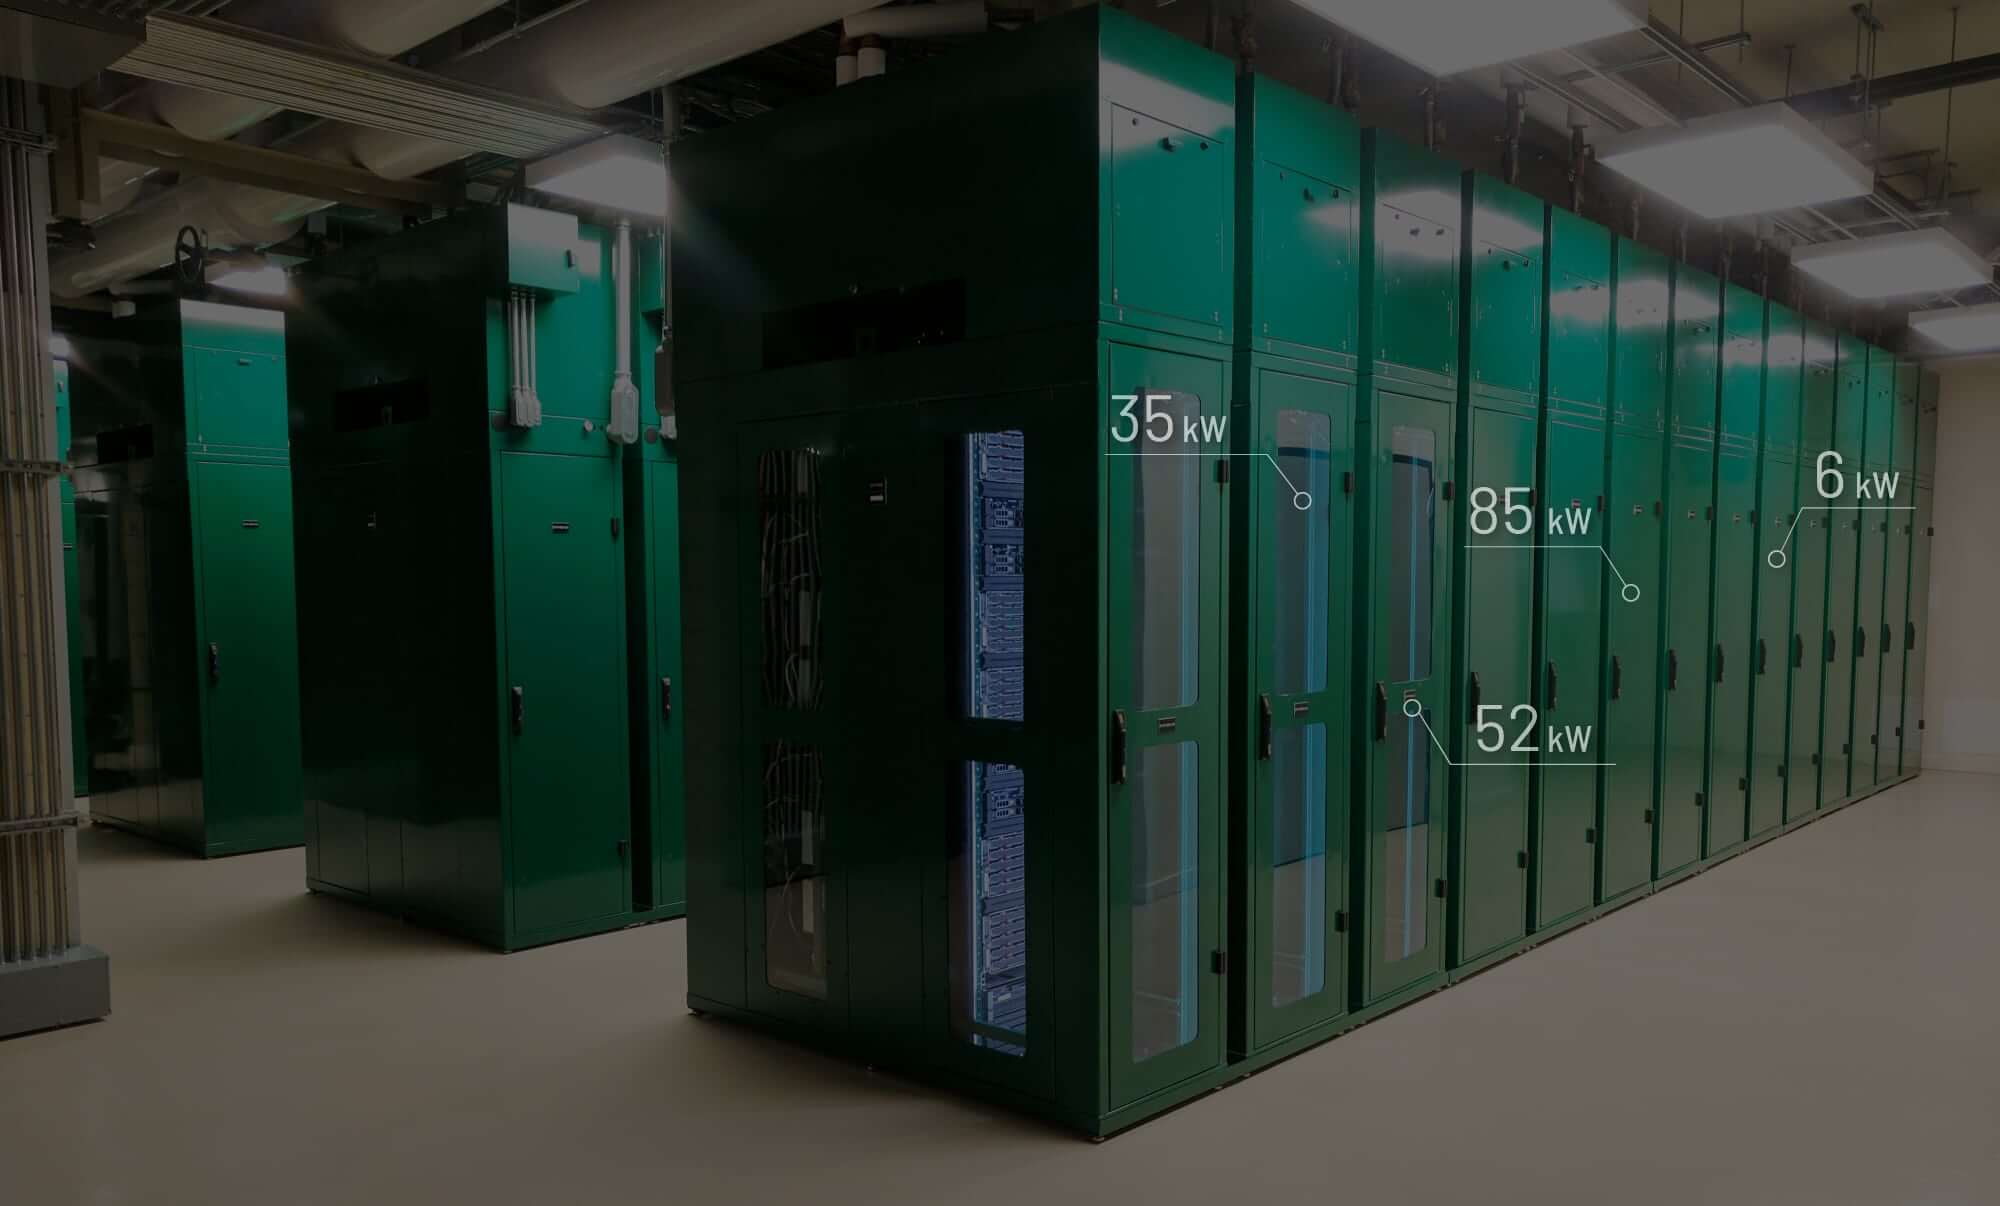 Retrofit data center racks